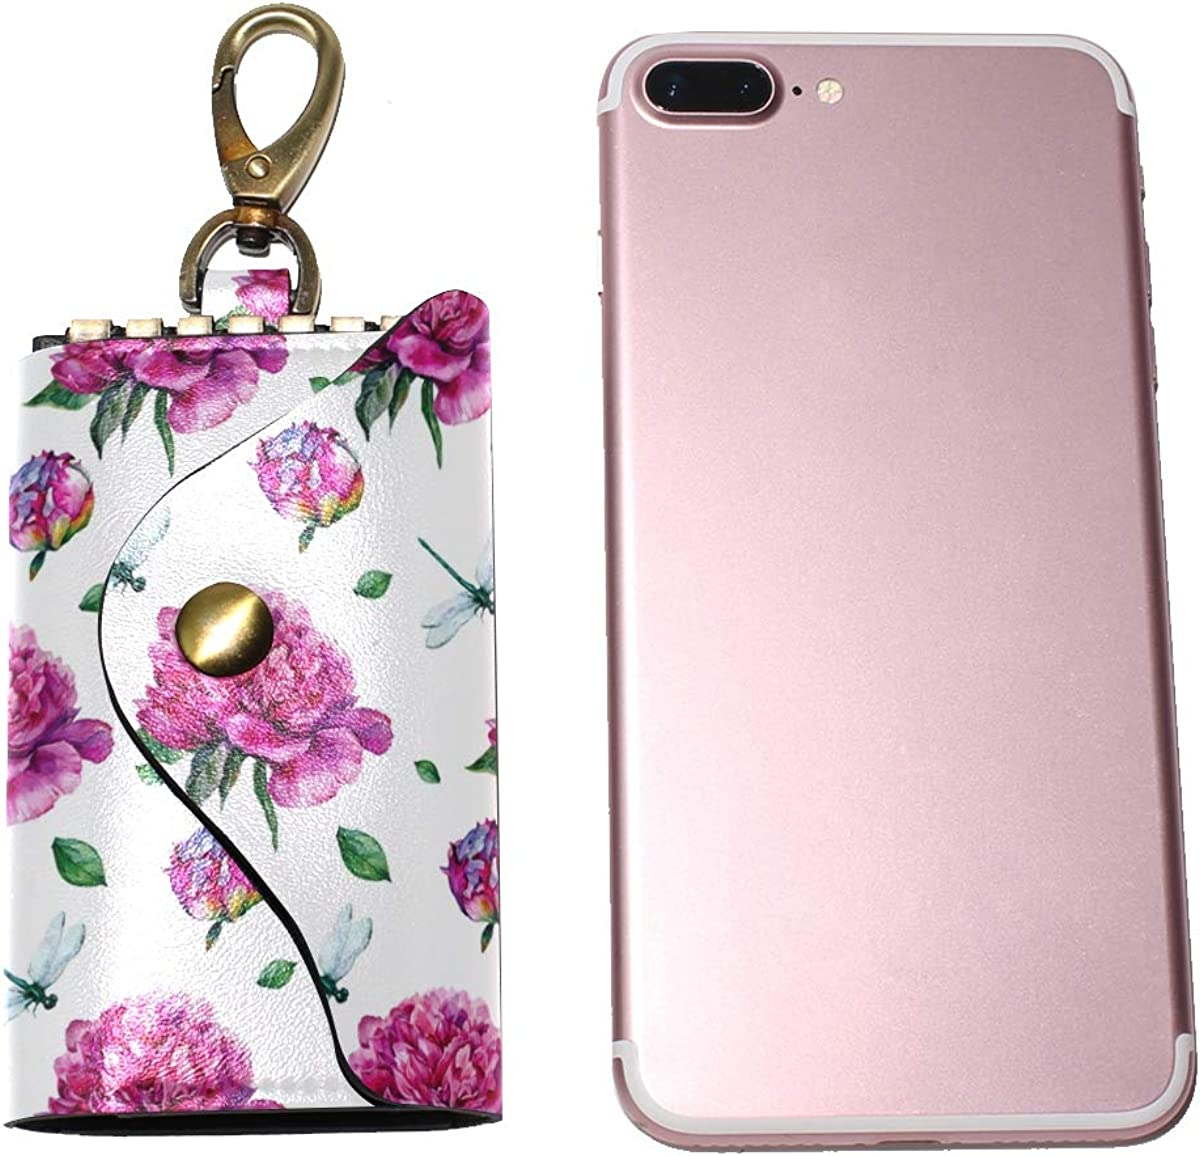 KEAKIA Watercolor Peonies And Dragonfly Leather Key Case Wallets Tri-fold Key Holder Keychains with 6 Hooks 2 Slot Snap Closure for Men Women